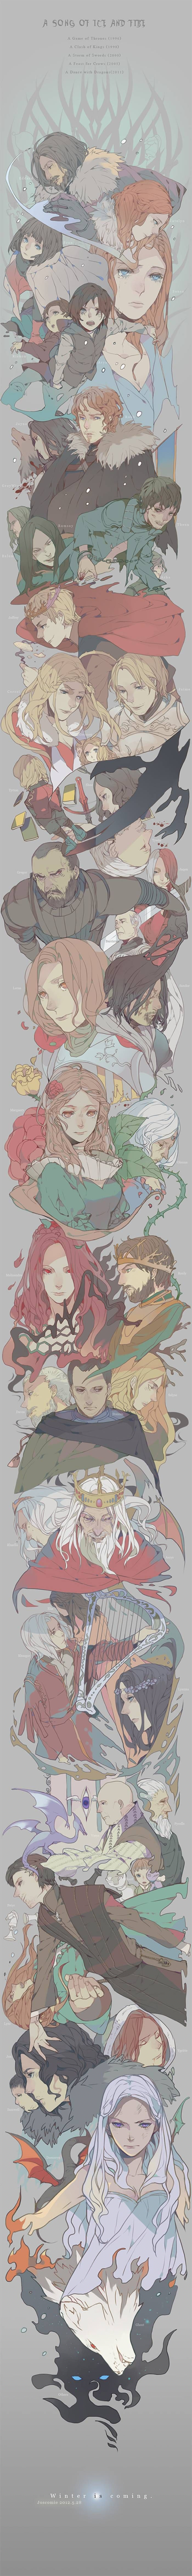 Game Of Thrones Characters Created In Anime Style Look Amazing